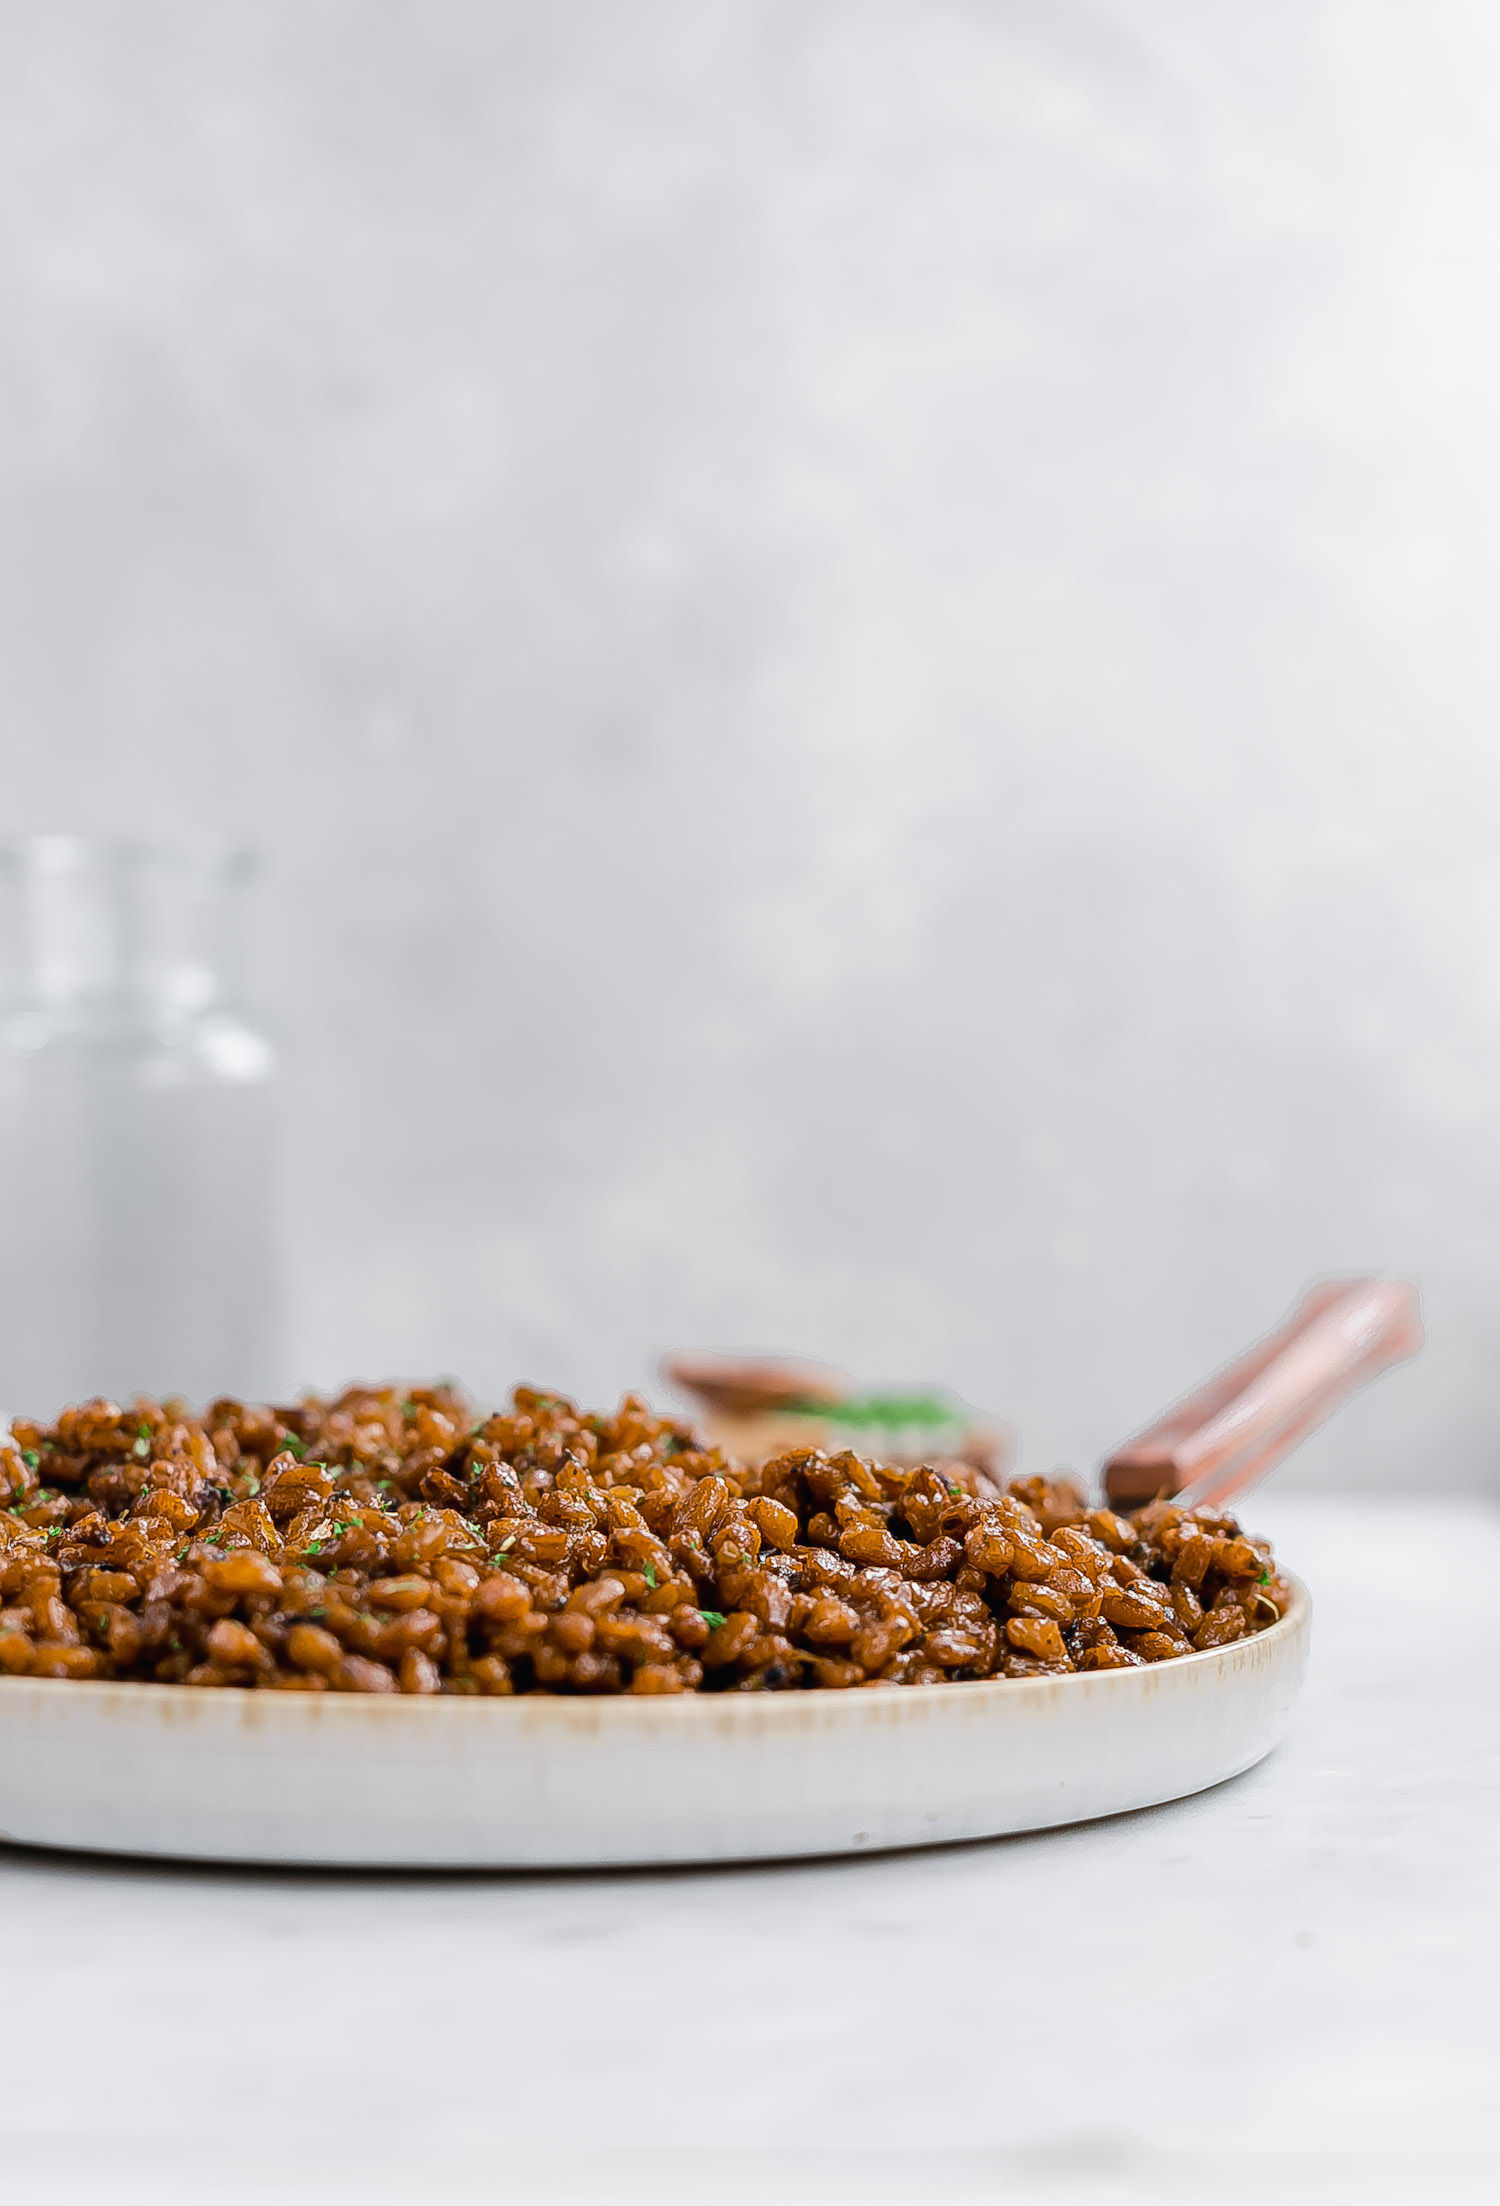 Onion Parsley Toasted Farro: nutritious farro toasted in sautéed onions and spices for a flavor-packed, wholesome, filling dinner dish. | TrufflesandTrends.com